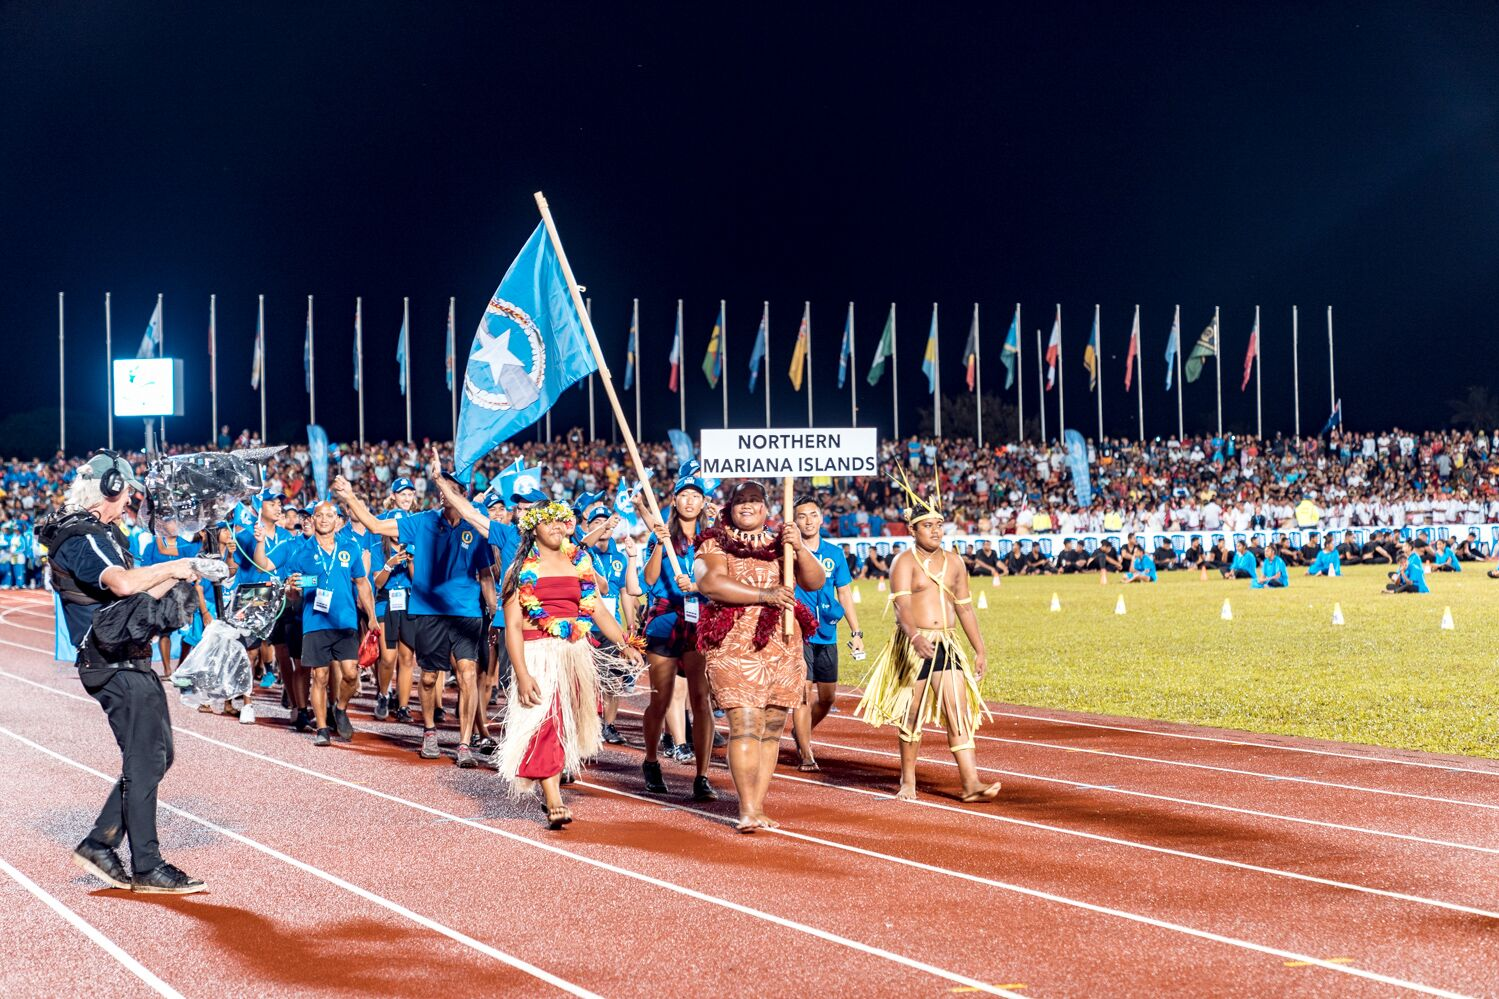 The Commonwealth of the Northern Mariana Islands will host the Pacific Mini Games ©Pacific Games News Service/Alvaro Hoyos Ramos